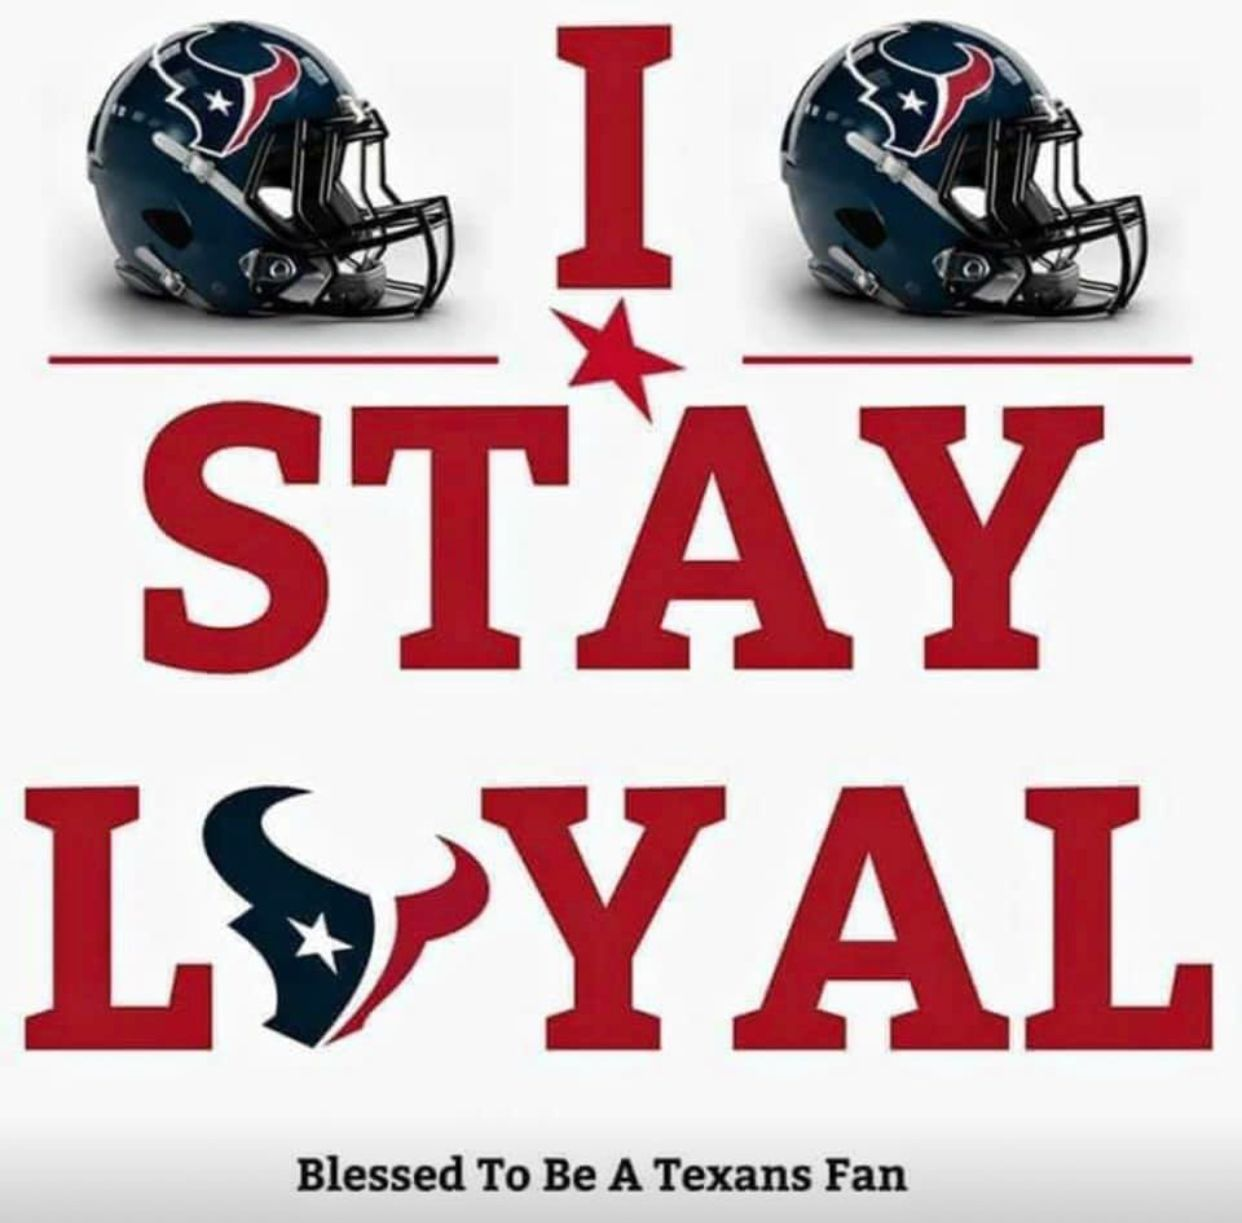 Still proud of my Texans!! We still good!! One game at a